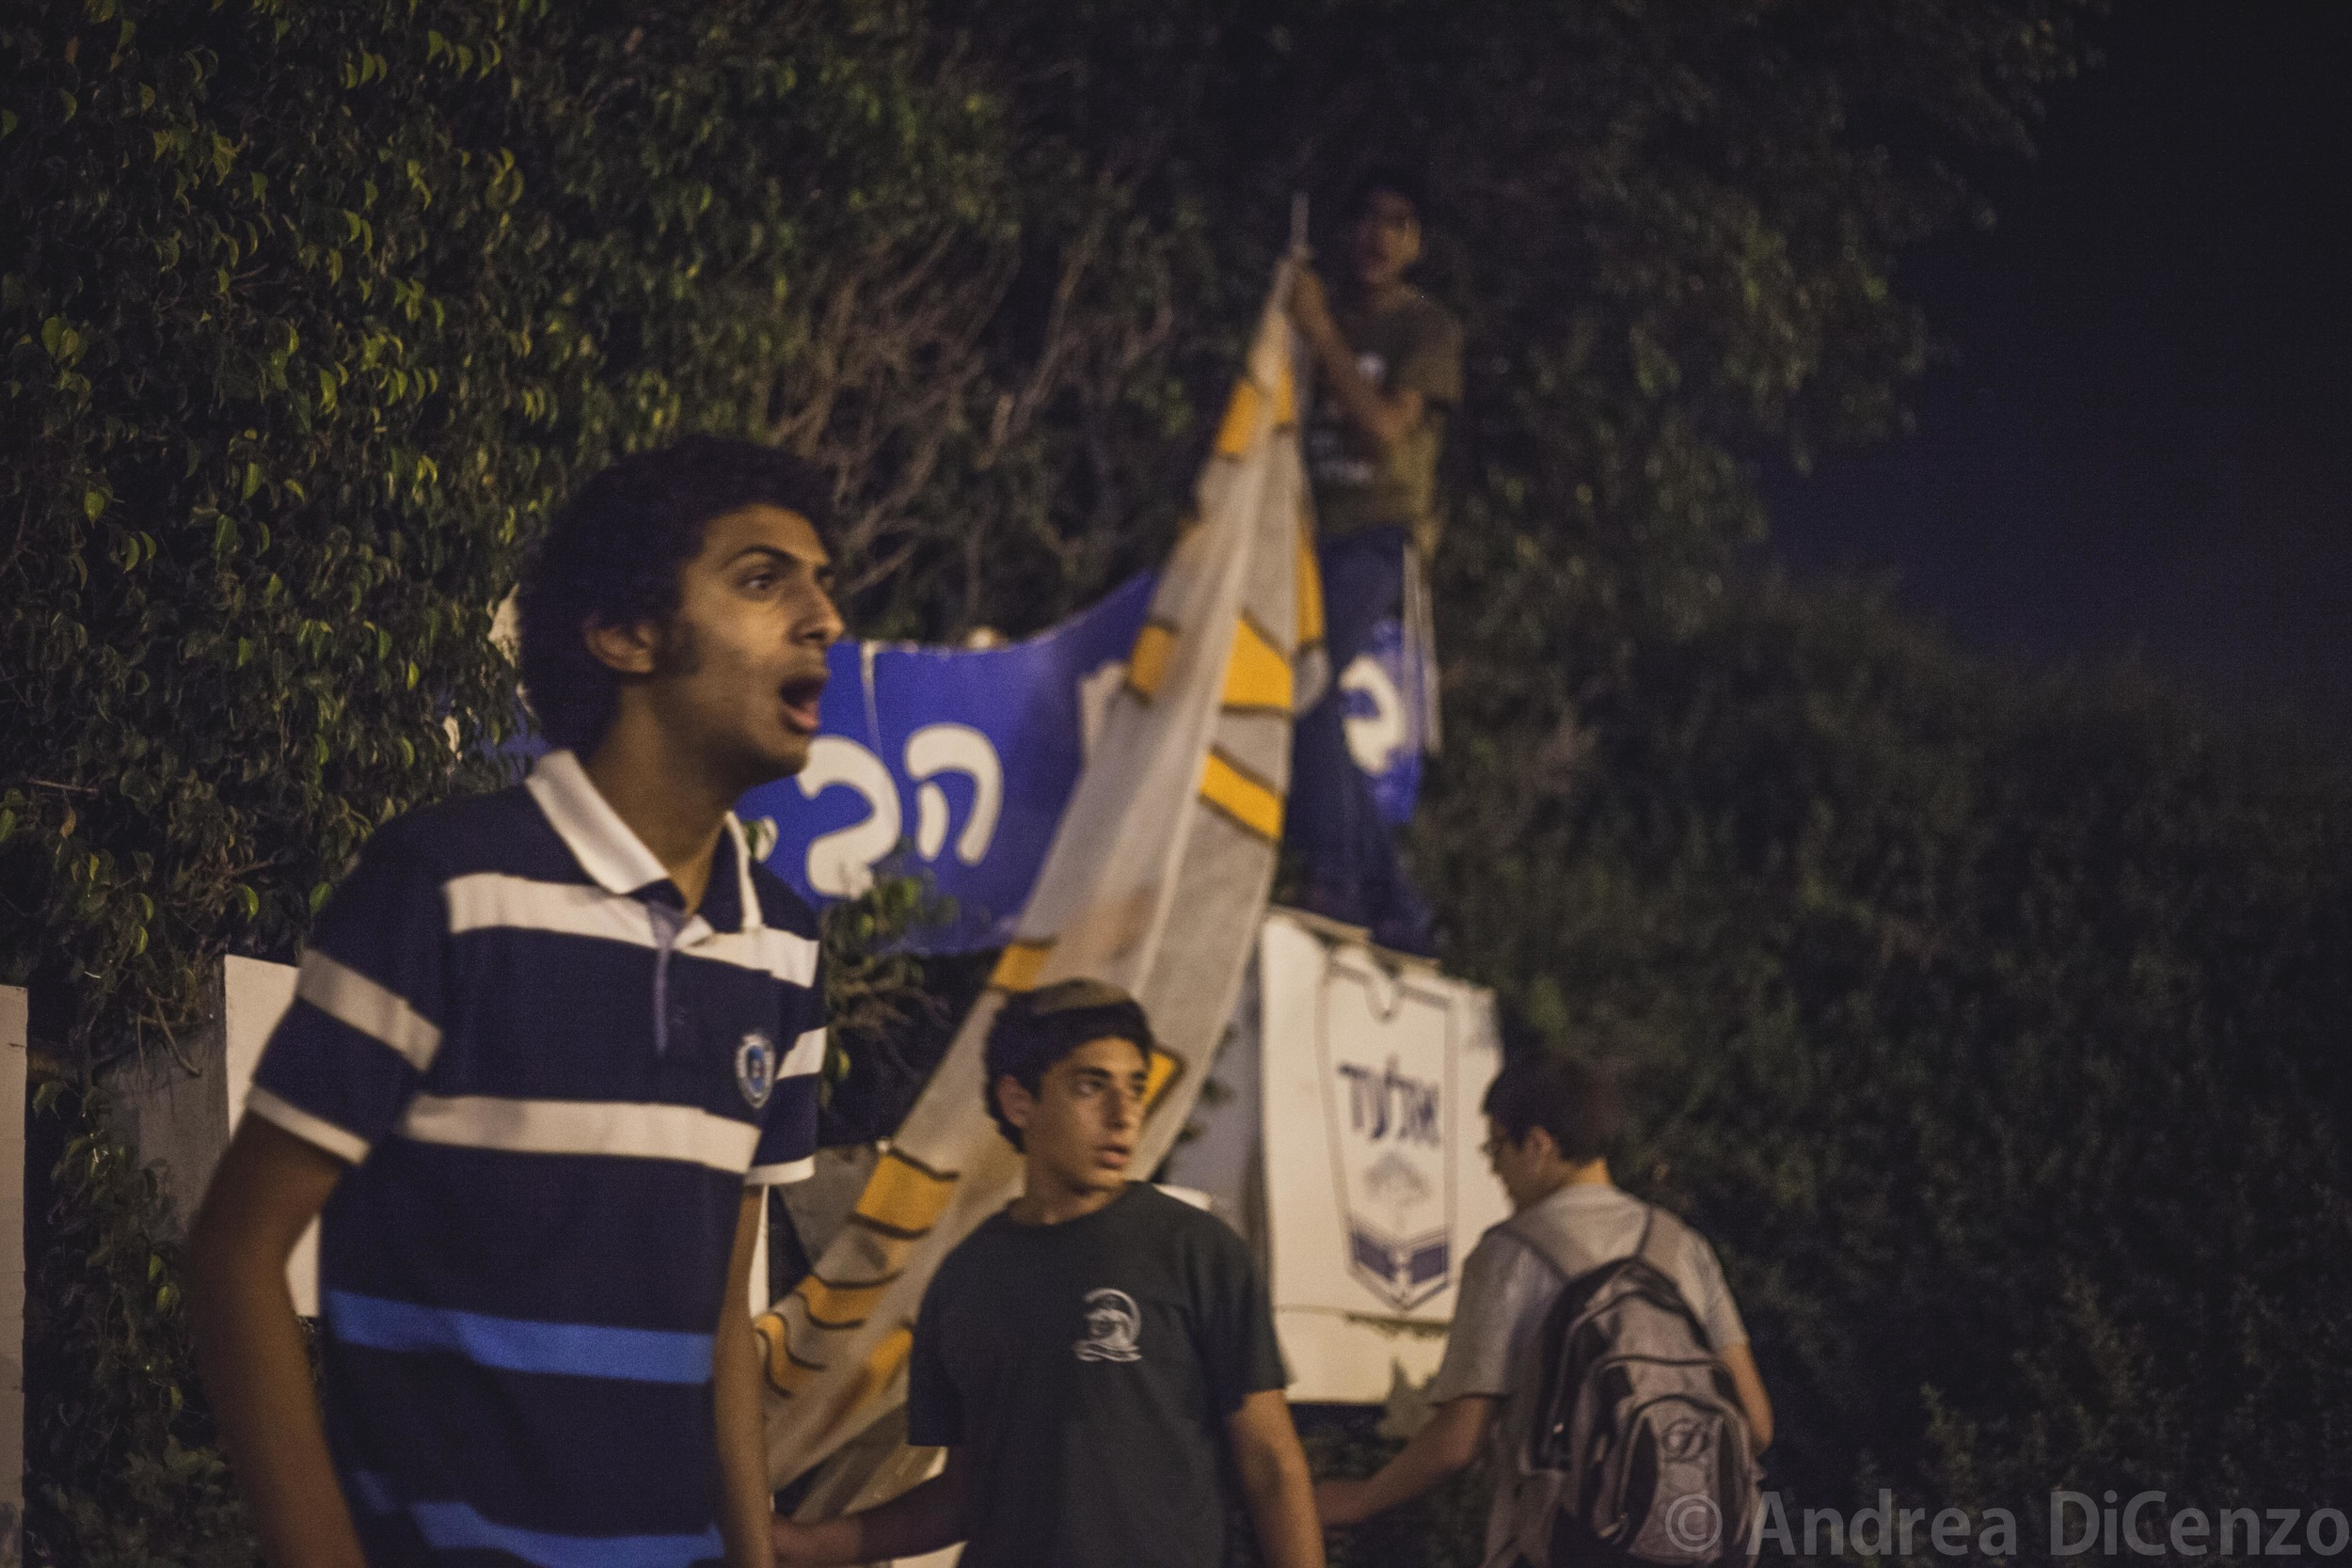 A group of boys from the Israeli settlement of El Adcautiously addressesstrangers passing by as they try to erect a large homemade banner on the evening the bodies of the three missing Israeli teenagers were discovered.